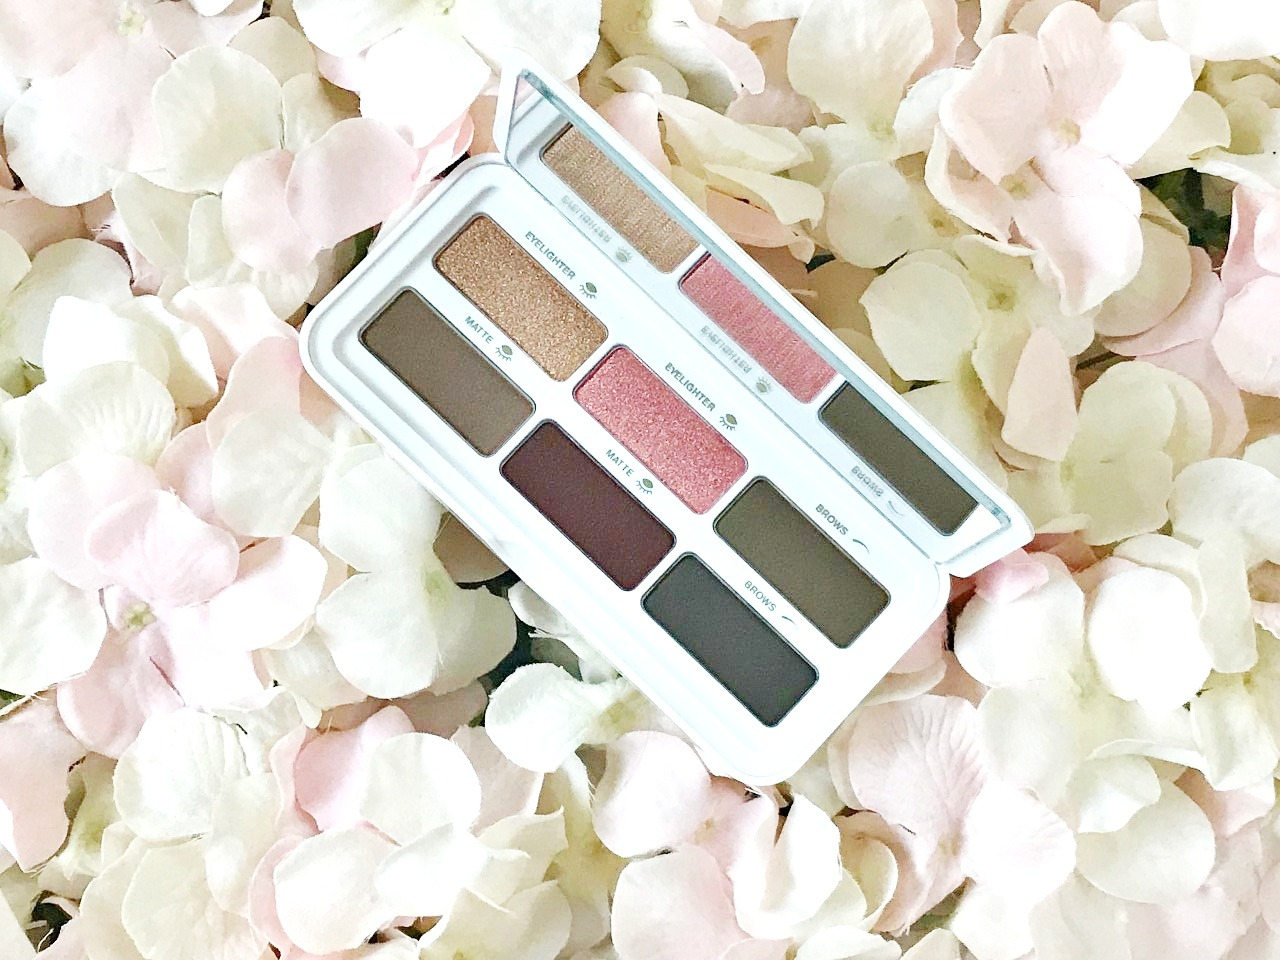 Clarins Ready In A Flash Eye Palette Review & Swatches